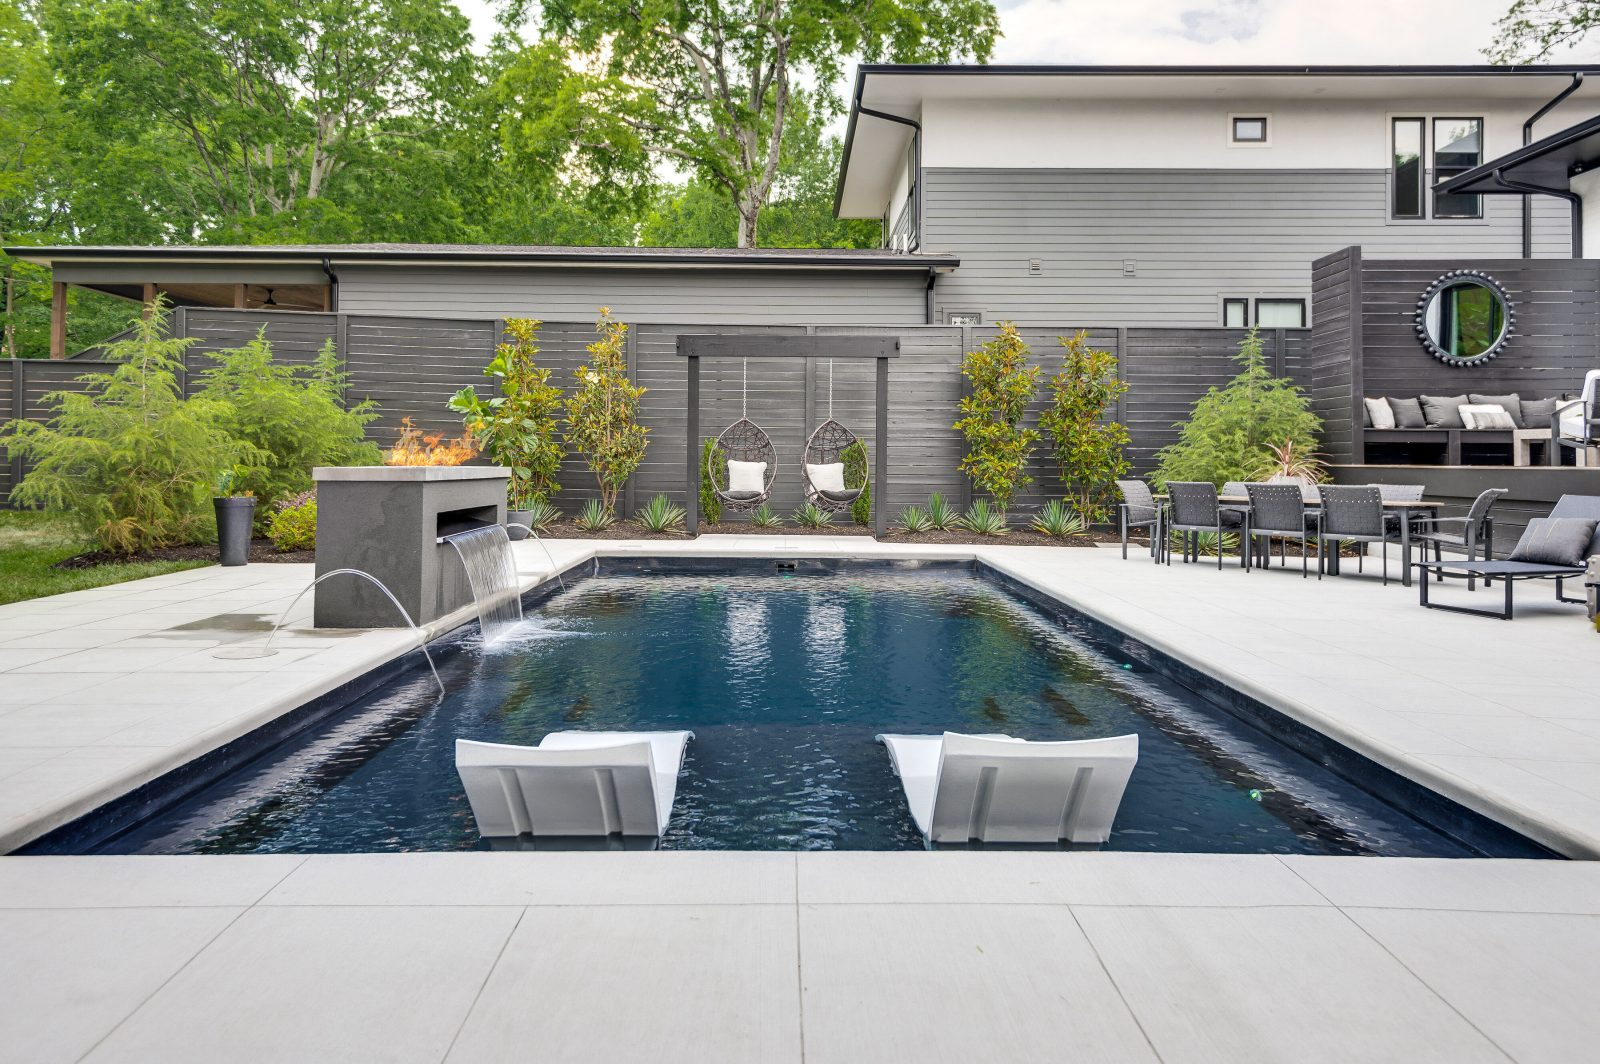 Outdoor backyard pool at the featured Green Hills, TN Hideaway.